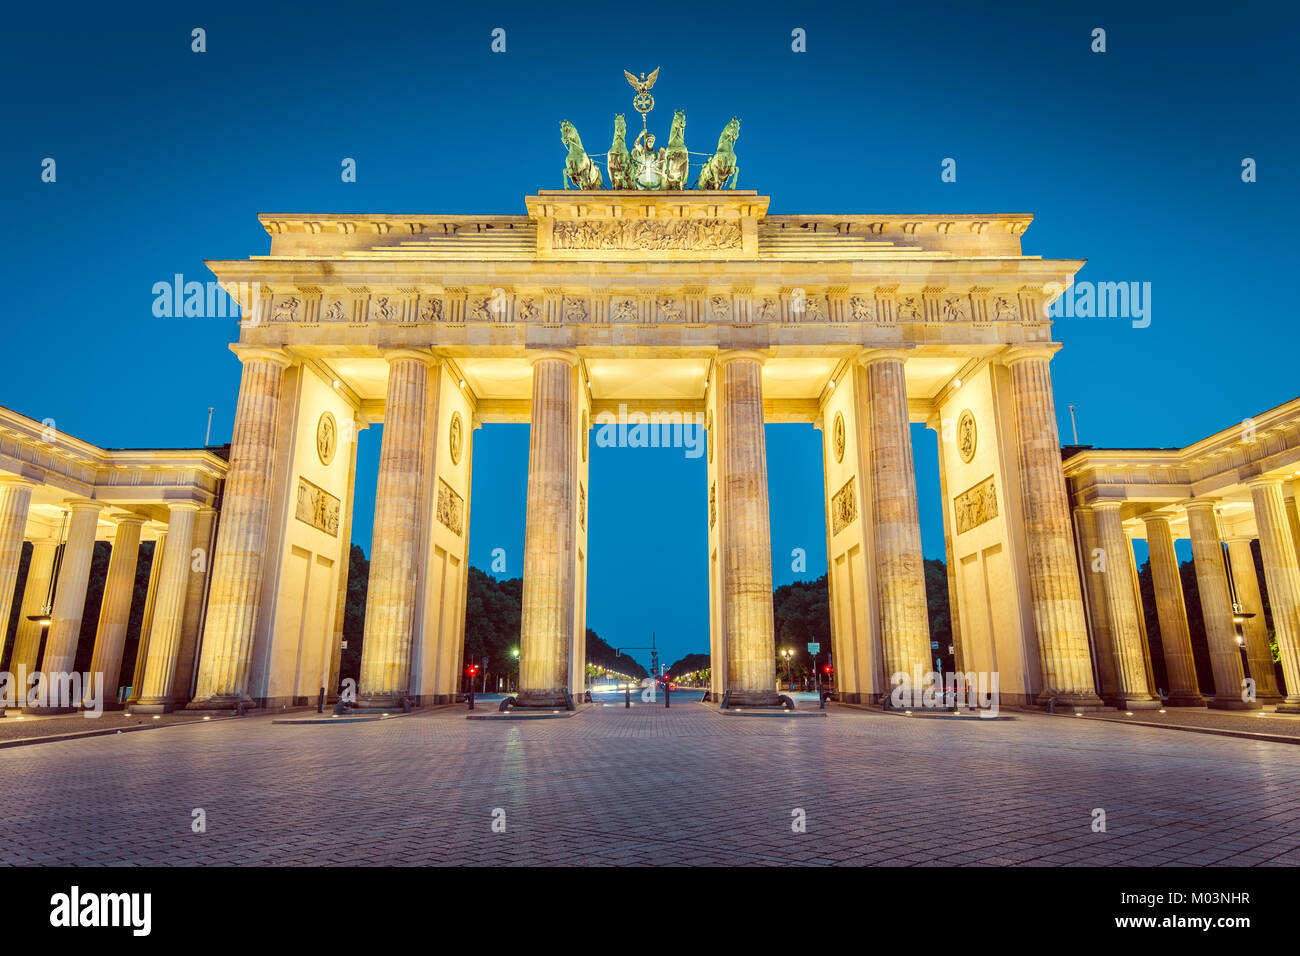 Classic view of famous Brandenburger Tor (Brandenburg Gate), one of the best-known landmarks and national symbols Stock Photo